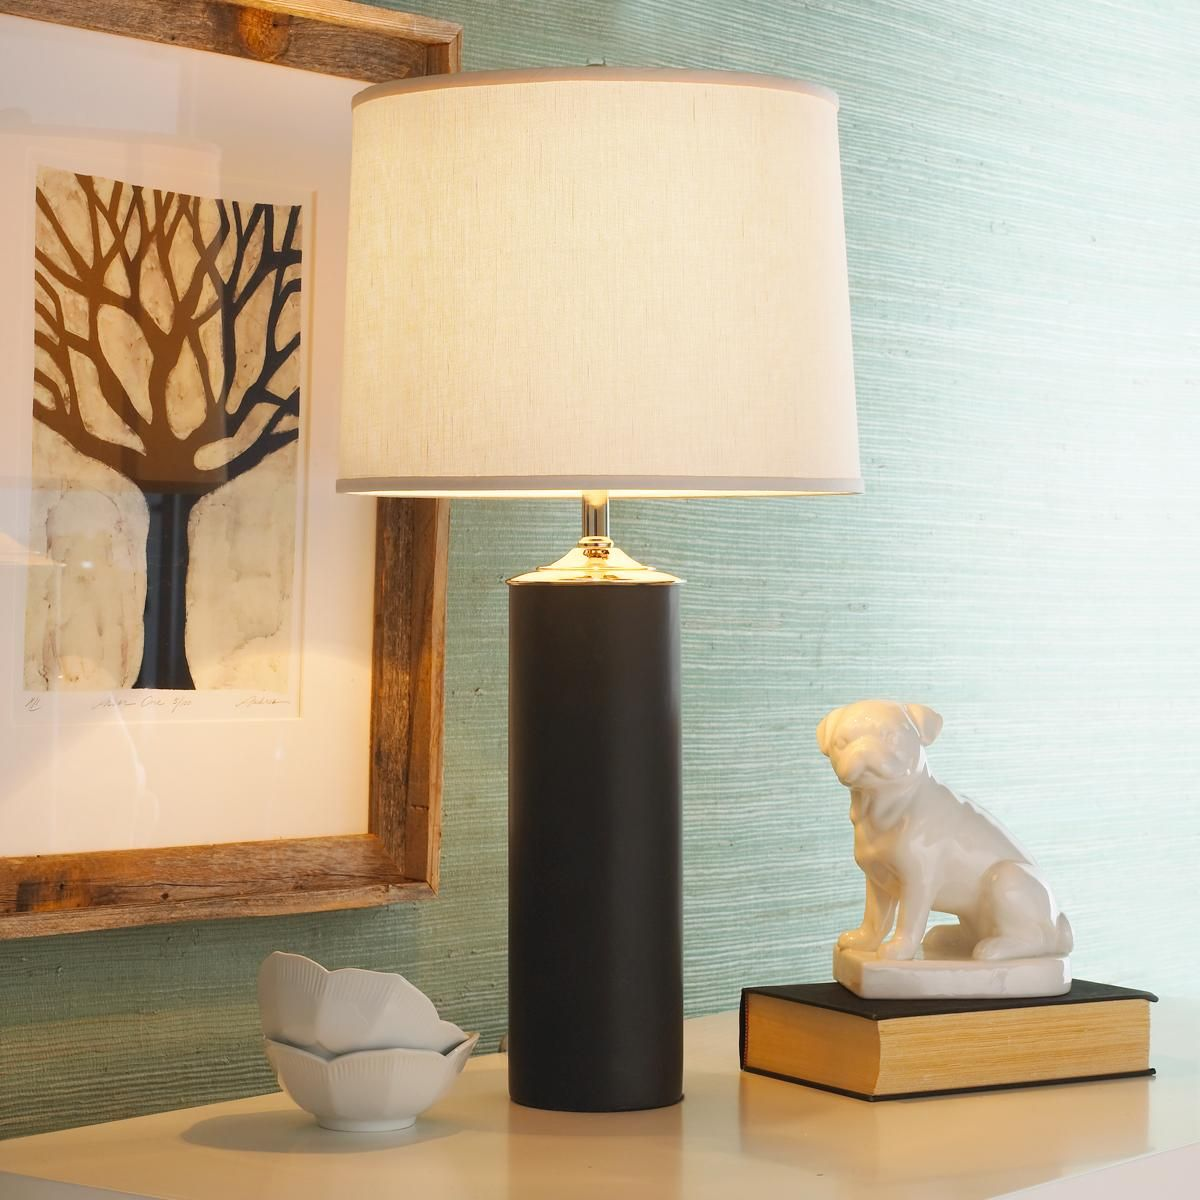 ffdf3a79dda0 Black Modern Cylinder Ceramic Table Lamp with White linen drum shade $129